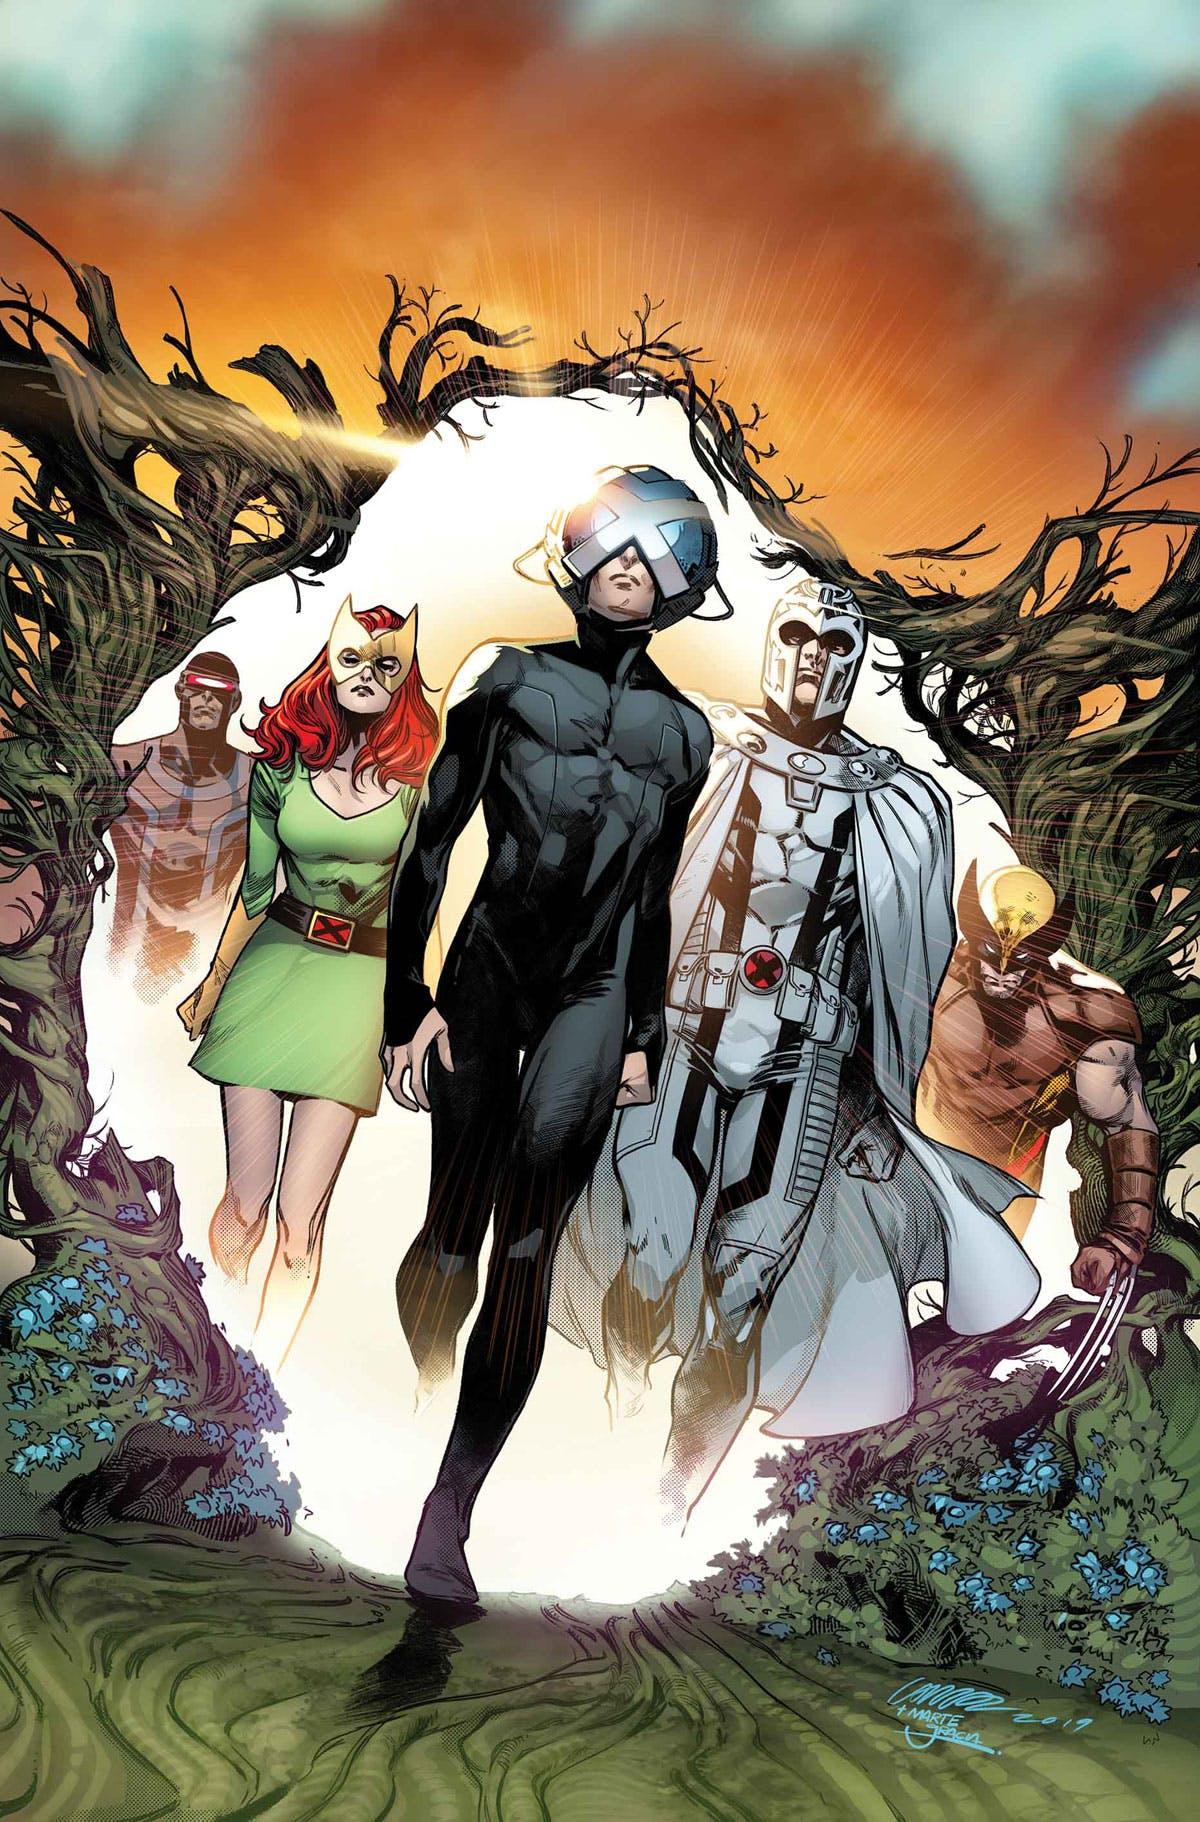 House of X #1 review: brave new world